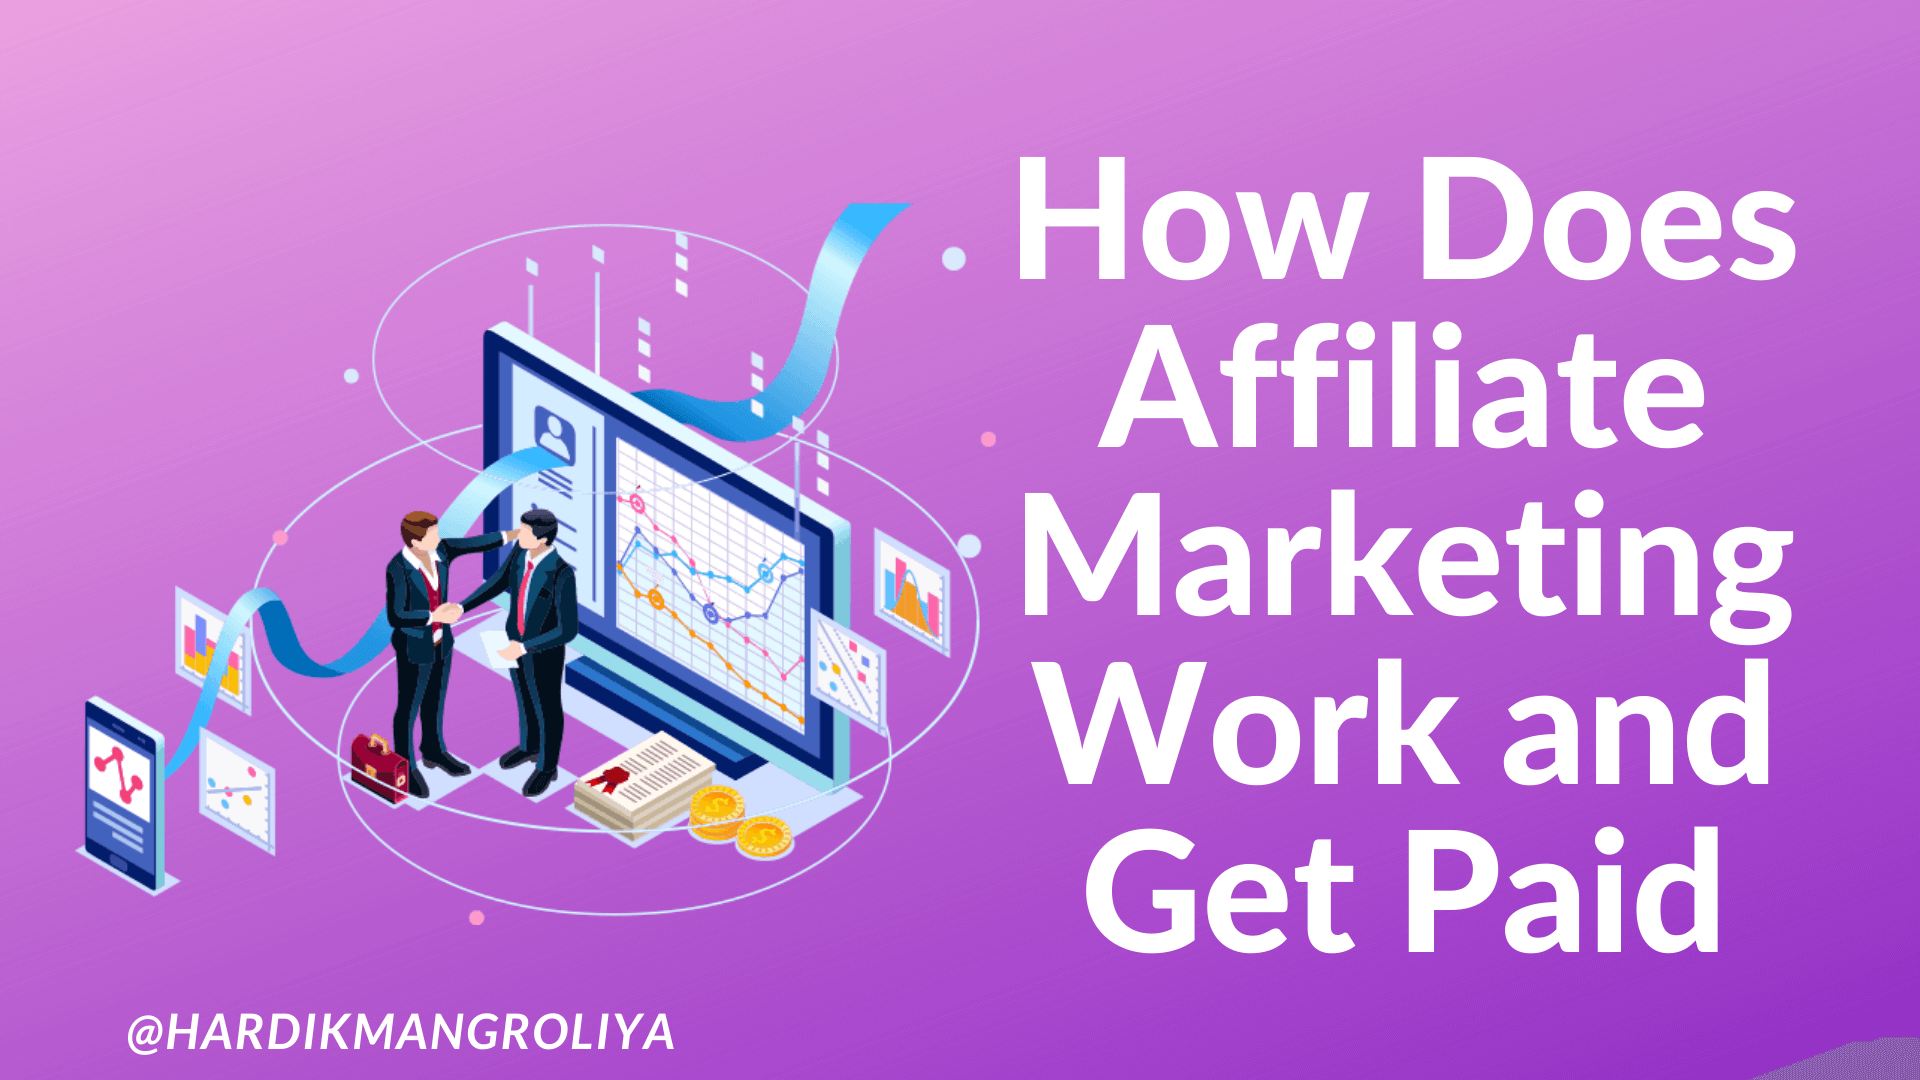 How Does Affiliate Marketing Work and Get Paid